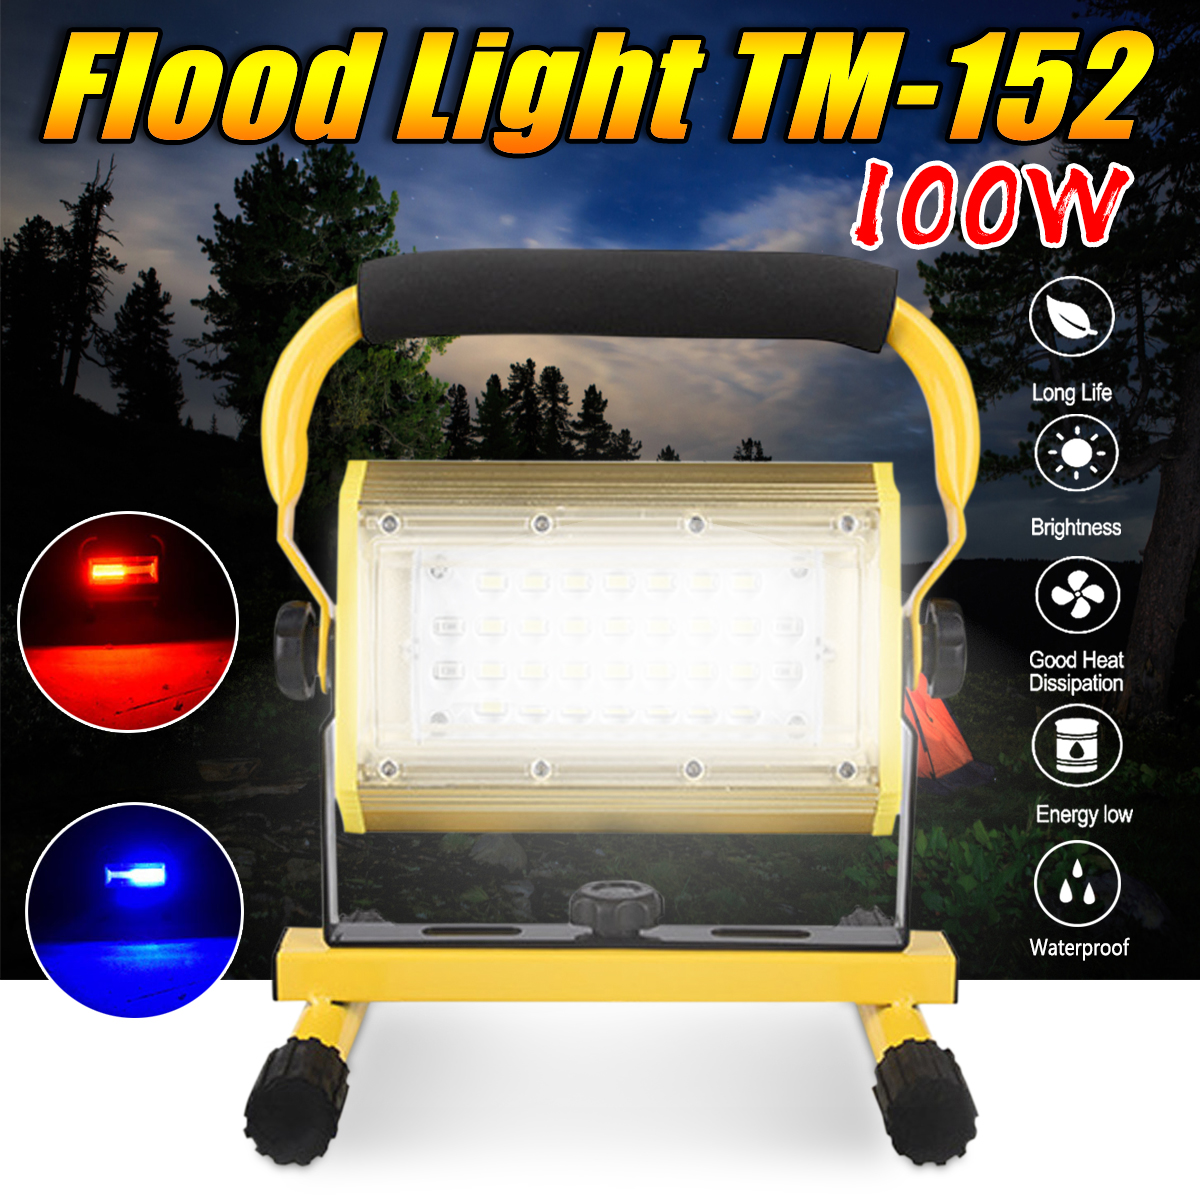 2400lm 100W LED Portable COB Flood Light LED Flashlight Work Light Waterproof IP65 for Outdoor Camping cob led work light waterproof lawn lamp flashlight 20w high power 2400lm outdoor hiking camping tent light portable searchlight